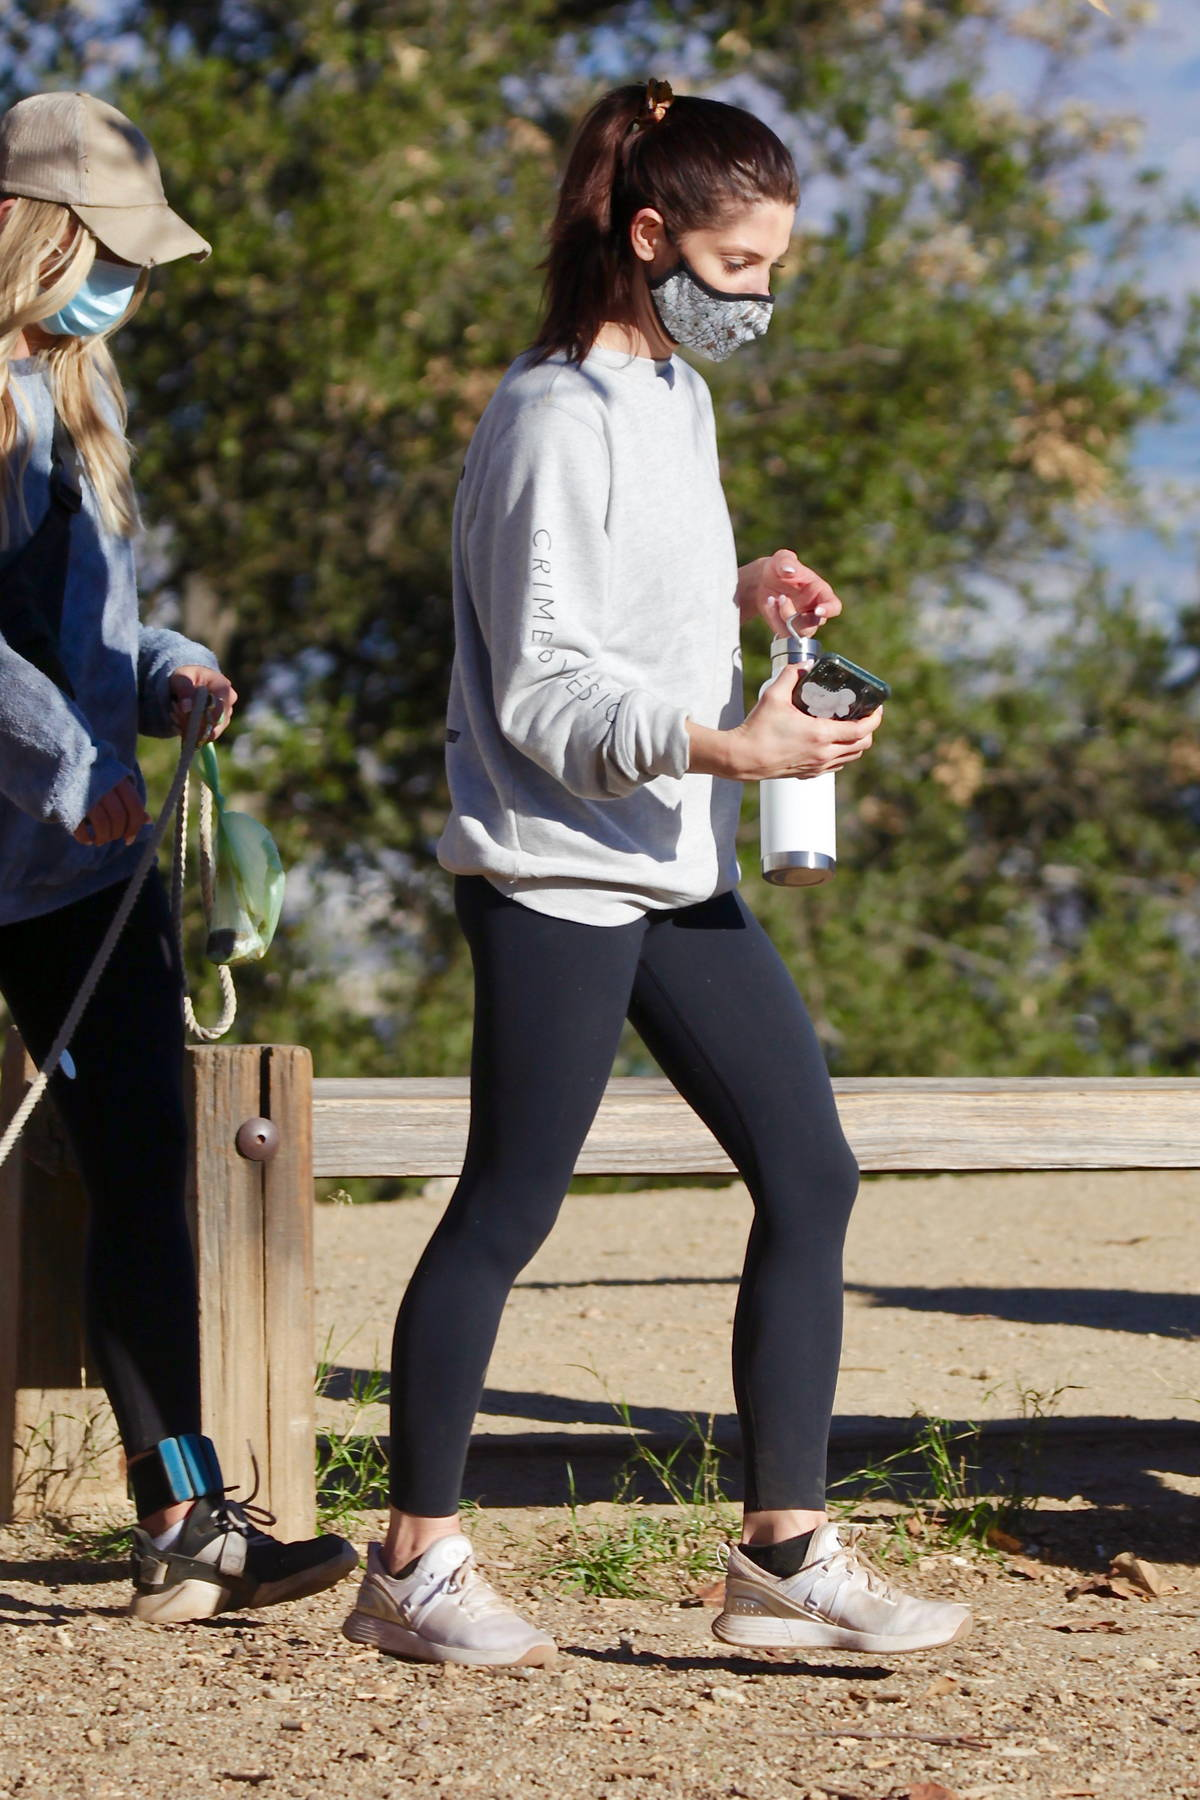 Ashley Greene wears a grey sweatshirt and black leggings for a morning hike with friends in Los Angeles